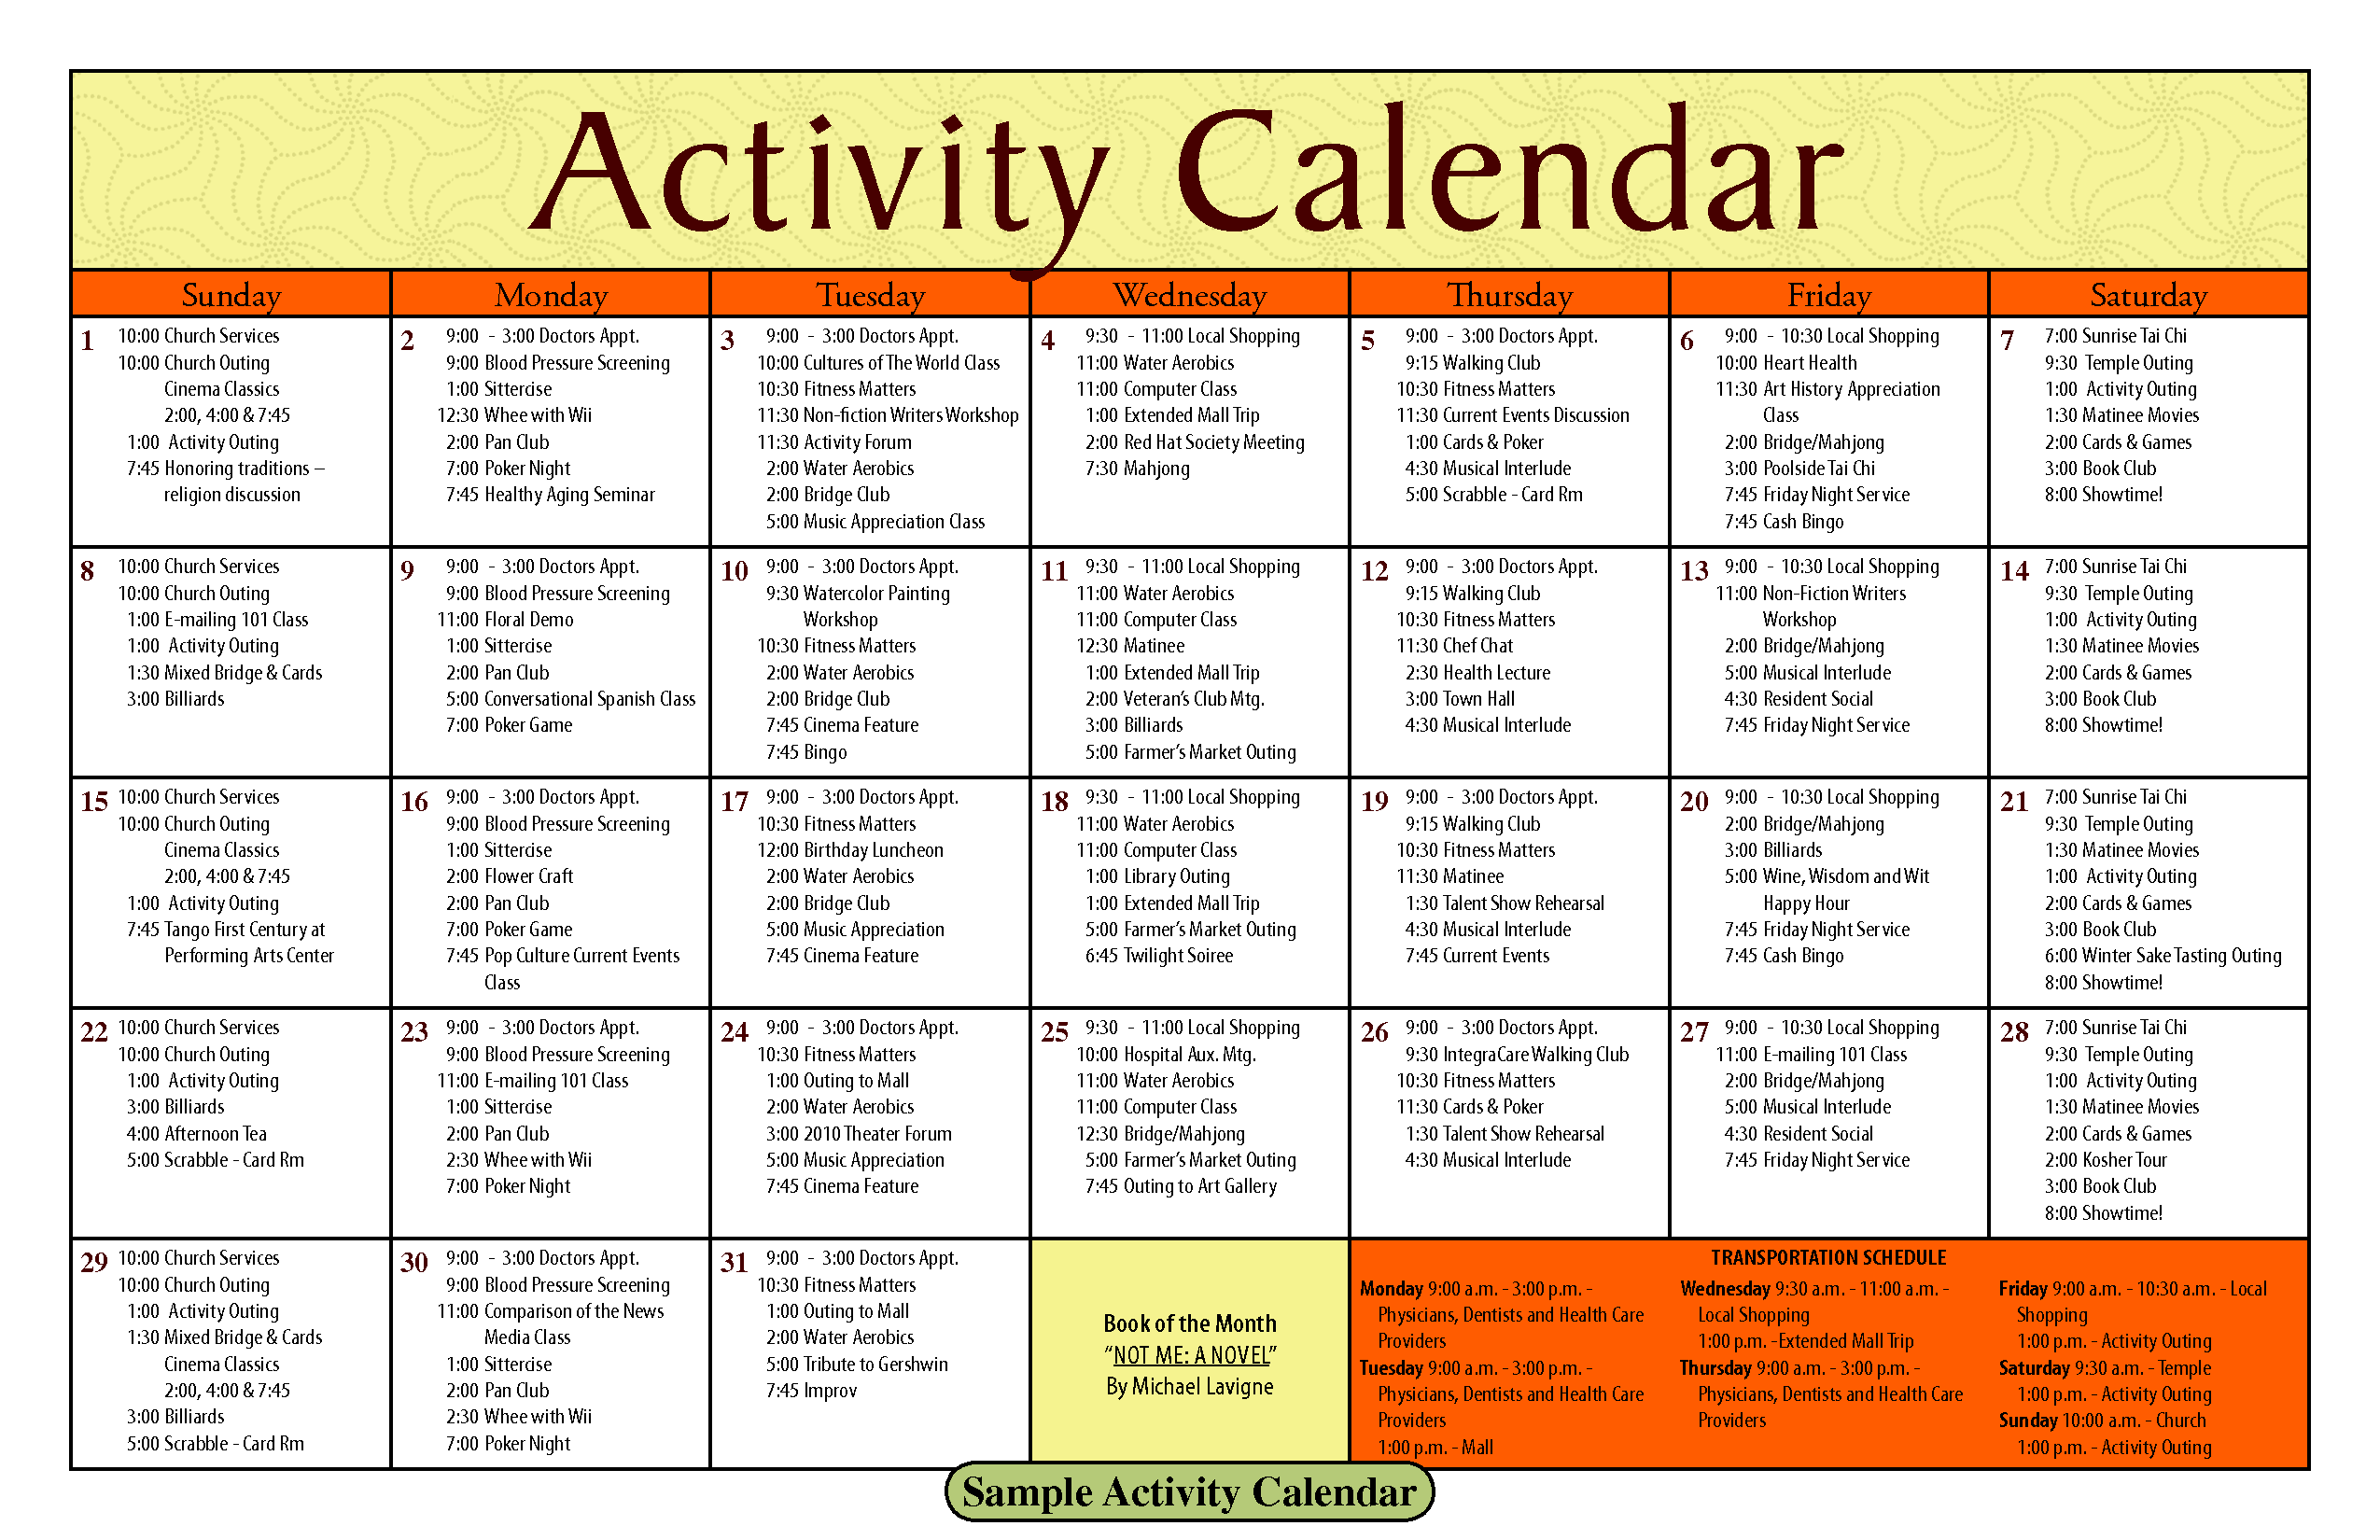 Calendar Activities Printables : Blank activity calendar template images printable